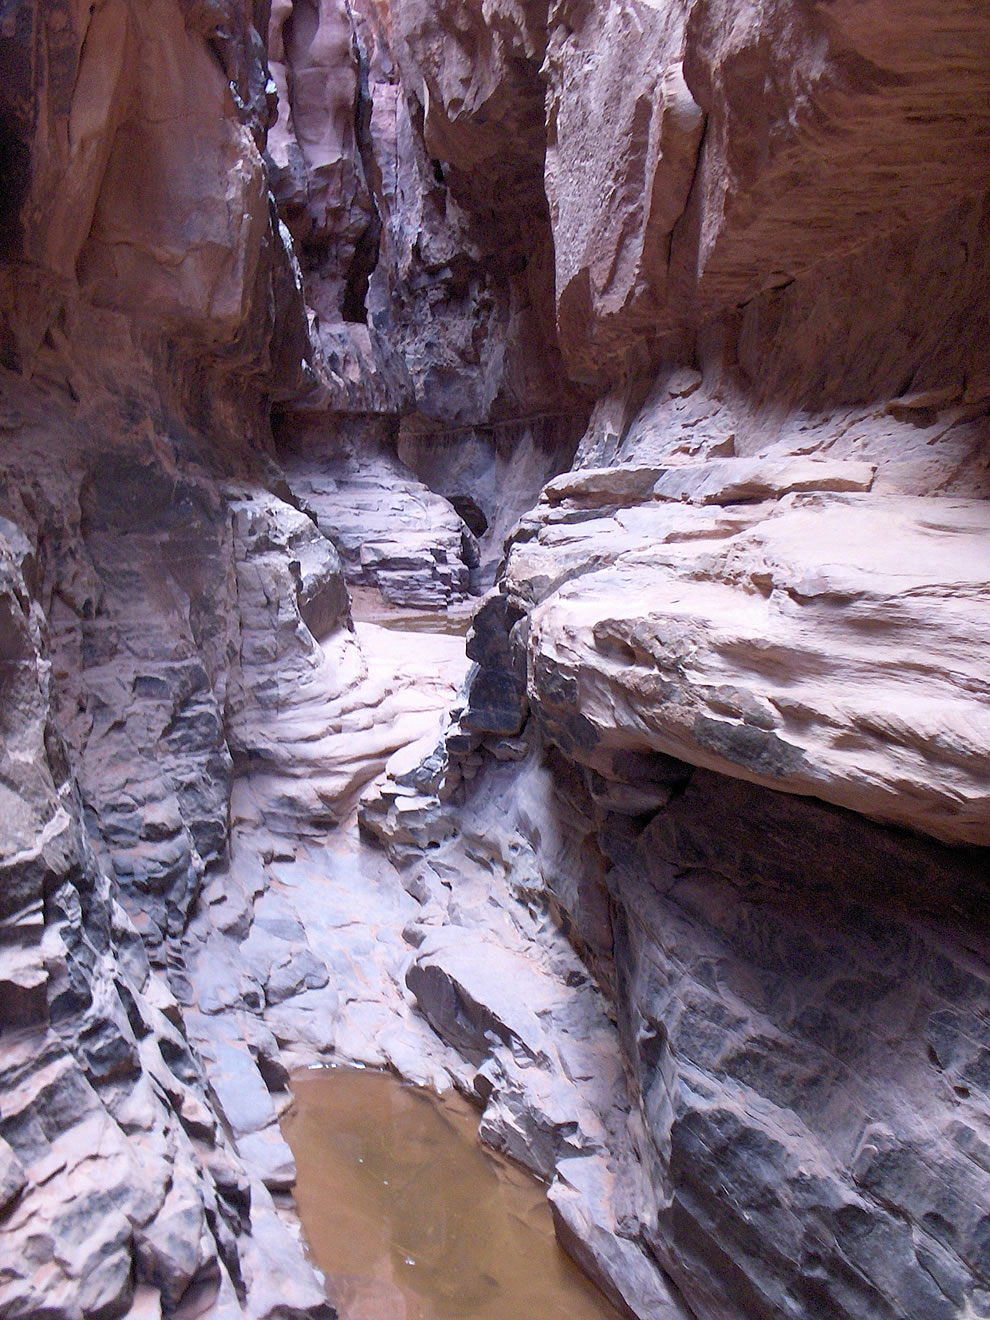 Pools of water in the gorges of Wadi Rum